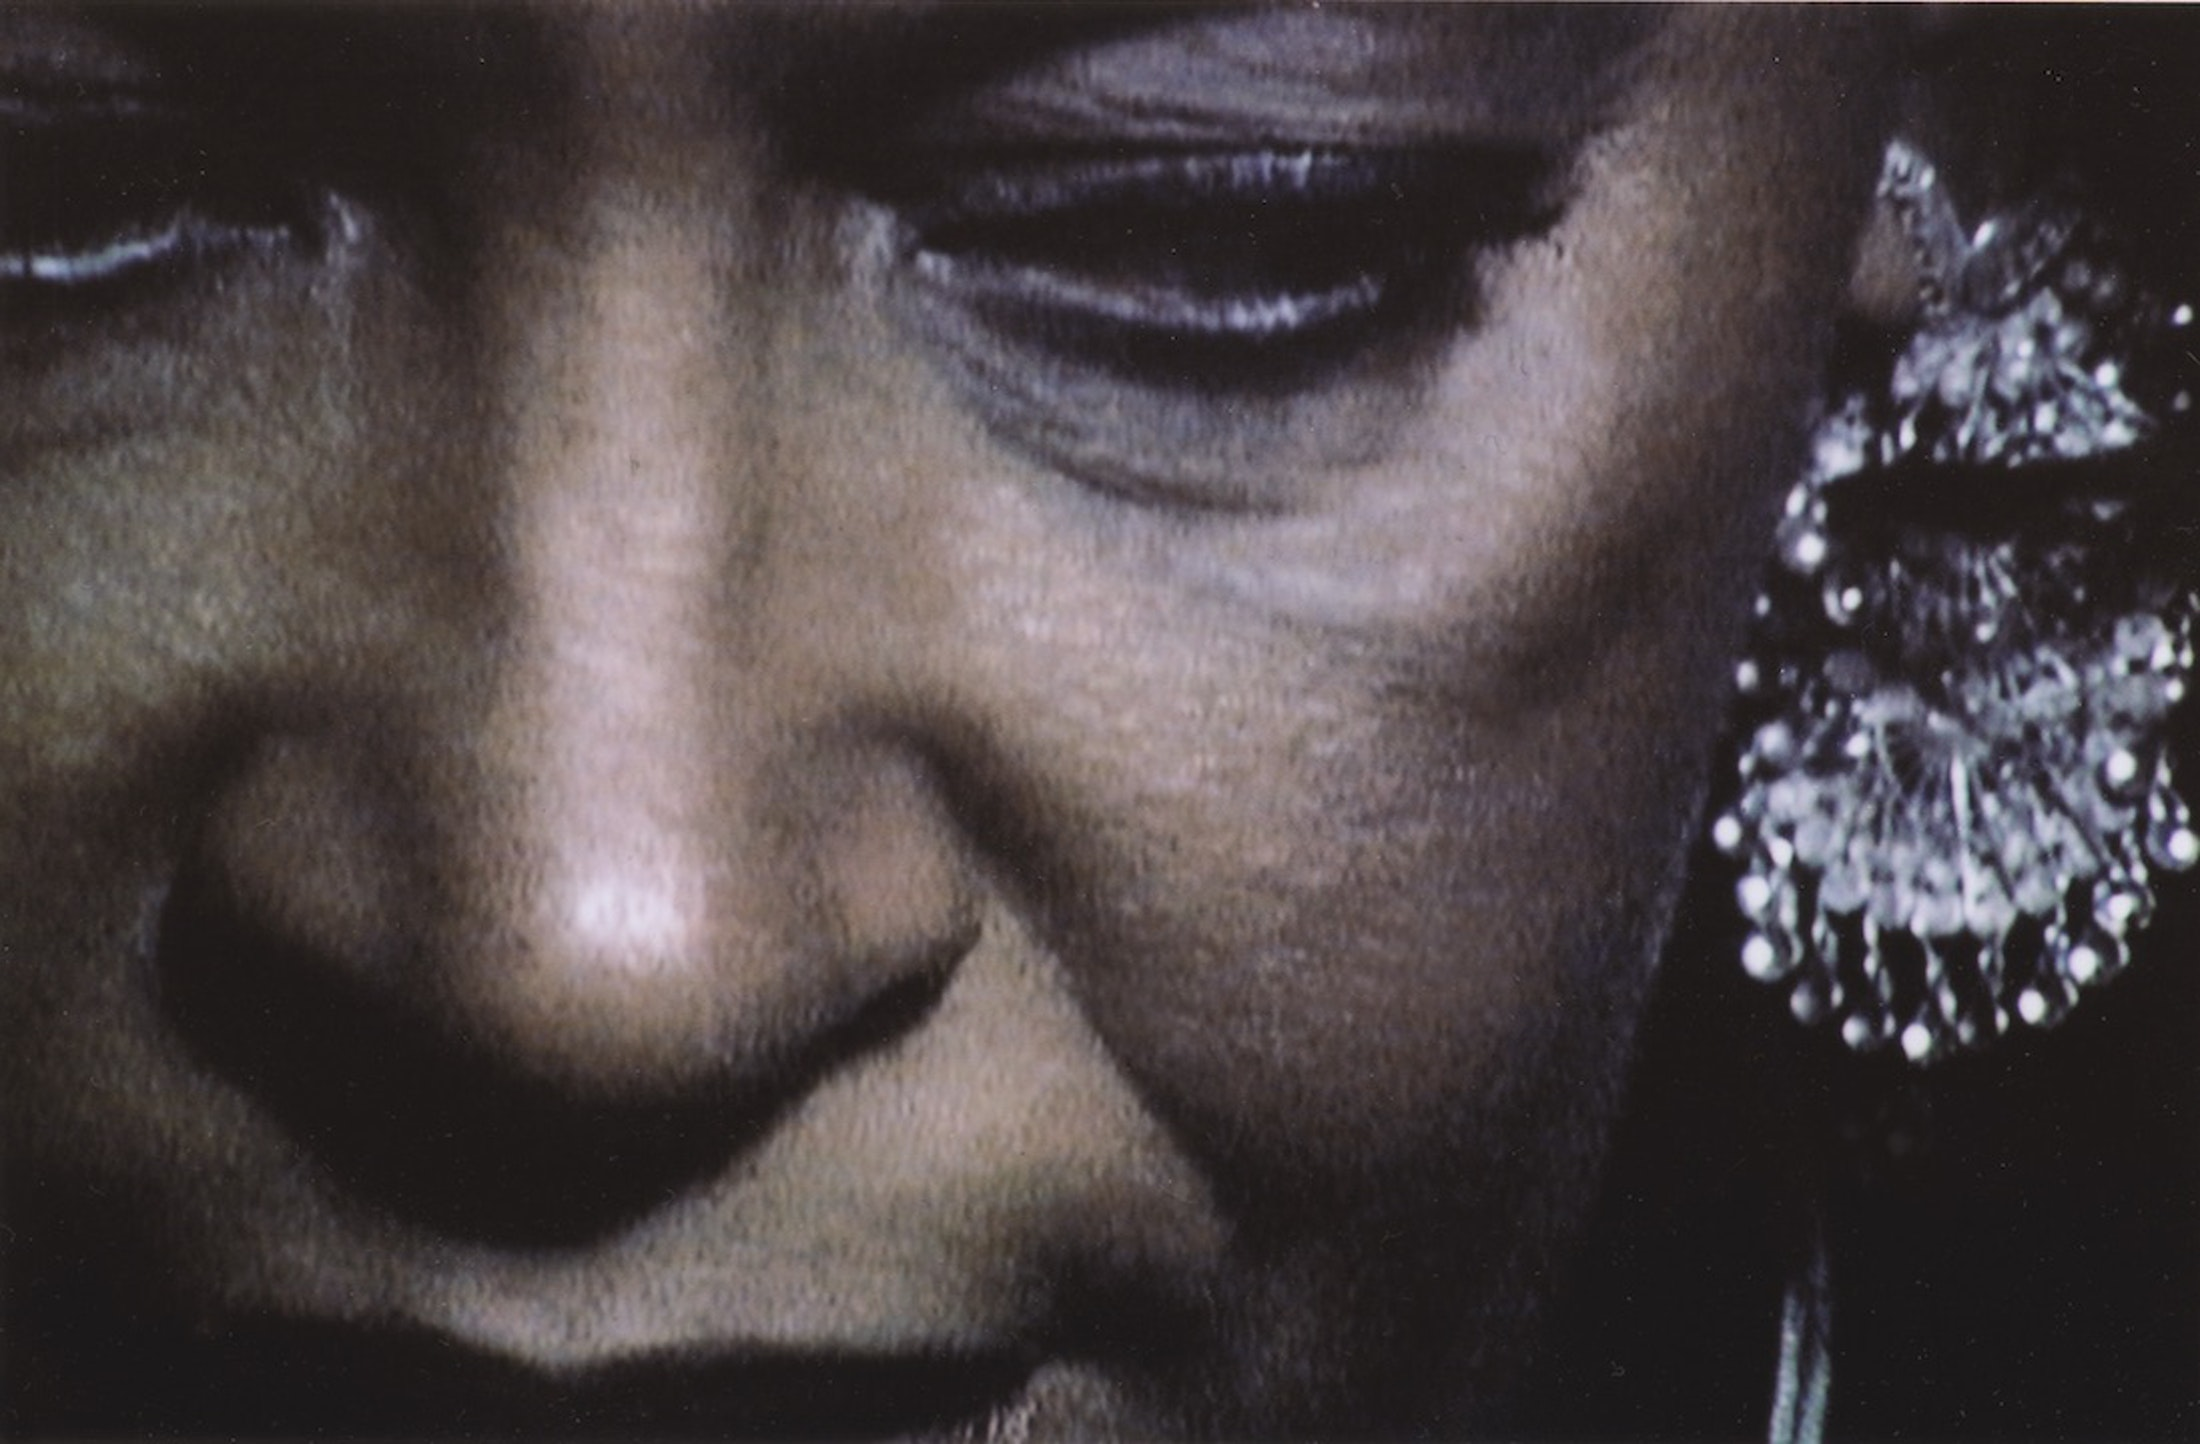 Carrie Mae Weems, Coming Up For Air, 2003 – 2004. Video. 51 Min, 34 sec. © Carrie Mae Weems. Courtesy of the artist and Jack Shainman Gallery, New York. The Eileen Harris Norton Collection. Photo: Charles White.